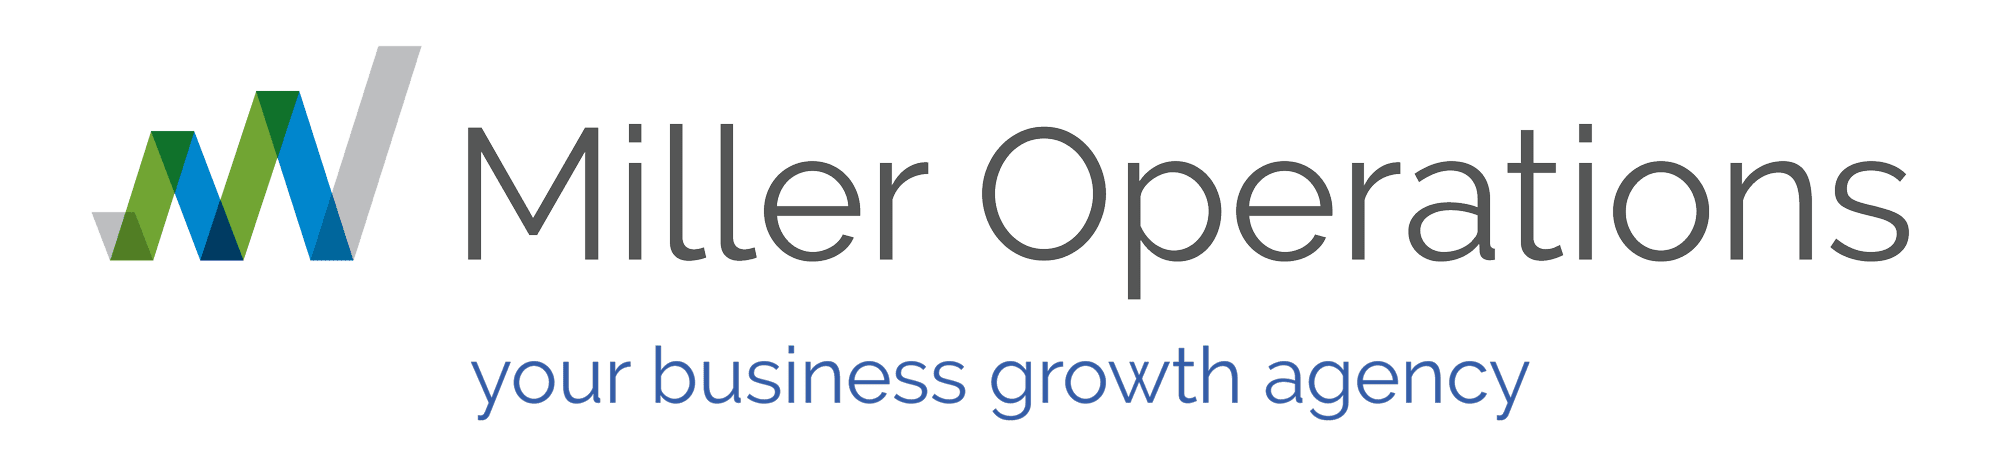 Miller Operations, Your business growth agency.